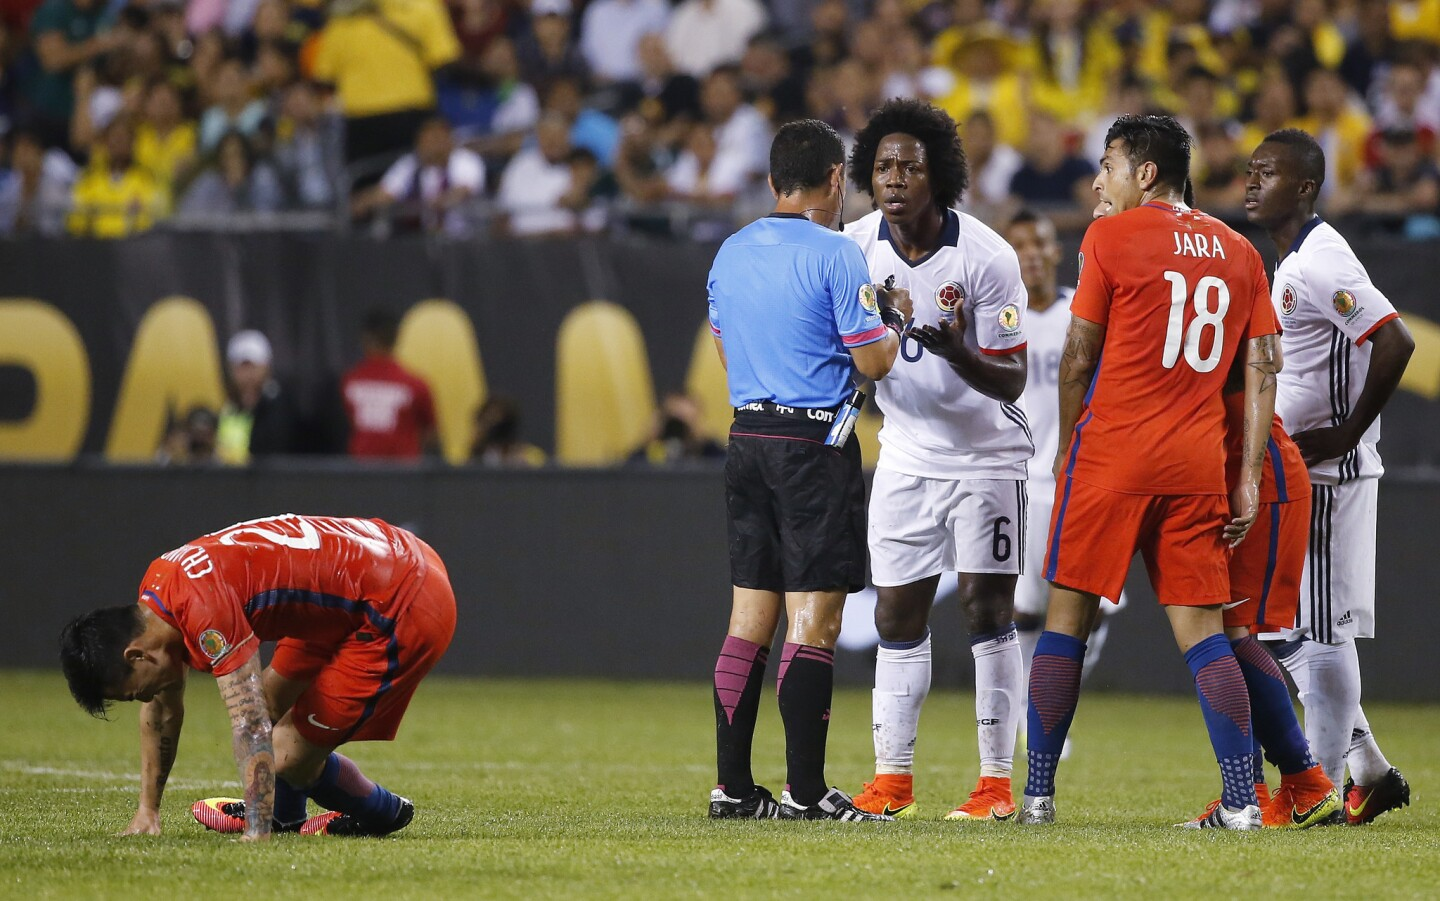 Colombia's Carlos Sanchez (6) appeals to referee Joel Aguilar after receiving the first of two yellow cards during a Copa America Centenario semifinal soccer match against Chile at Soldier Field in Chicago, Wednesday, June 22, 2016. (AP Photo/Charles Rex Arbogast)